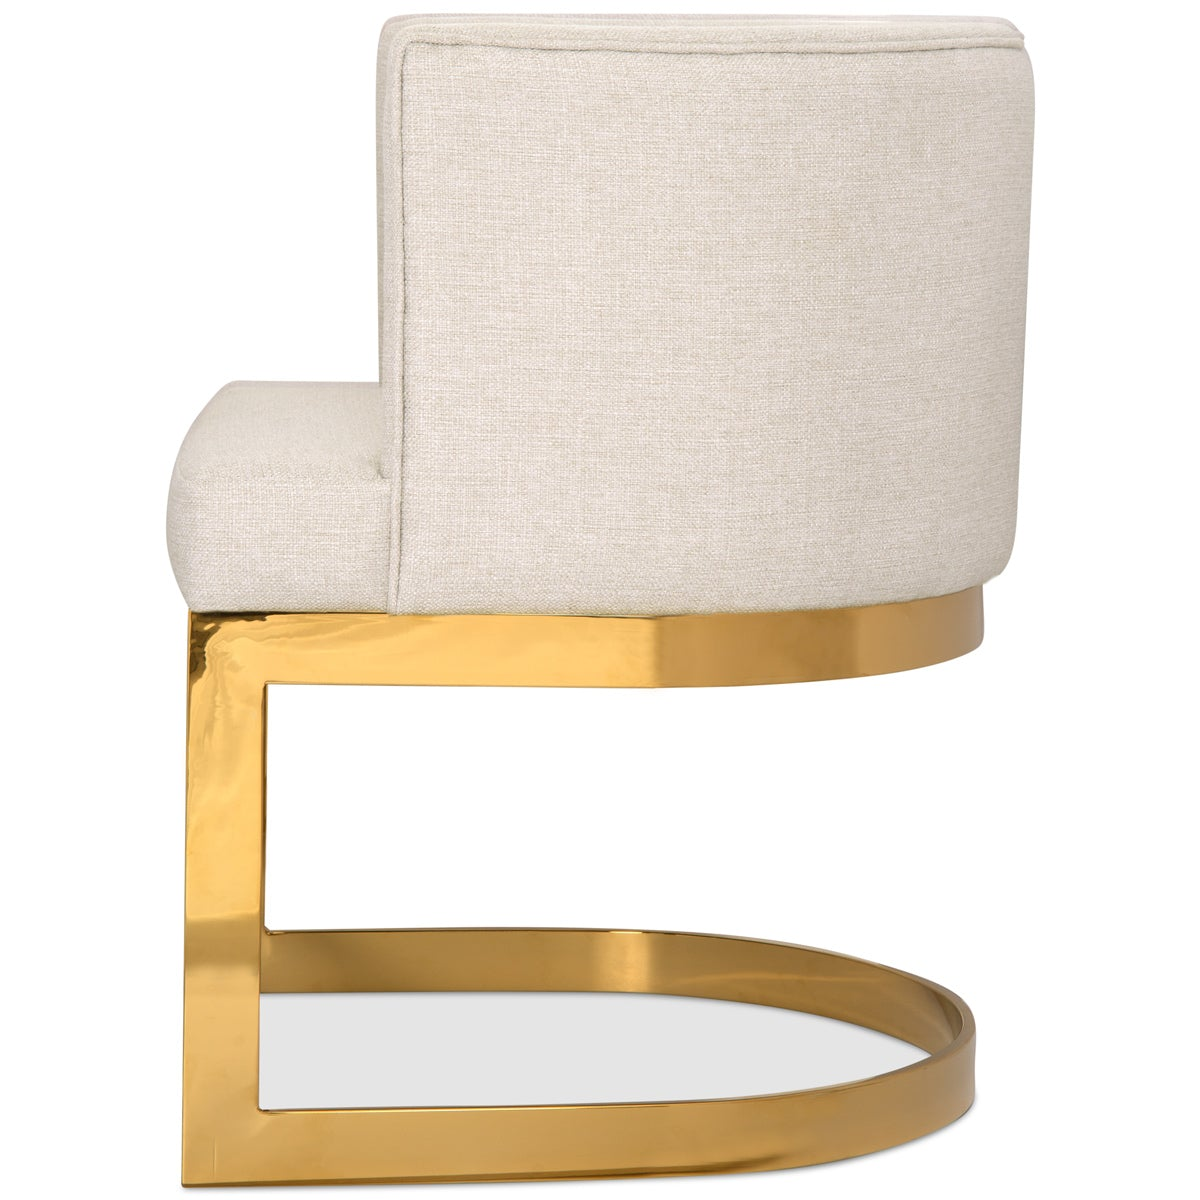 Ibiza Dining Chair in Linen - ModShop1.com